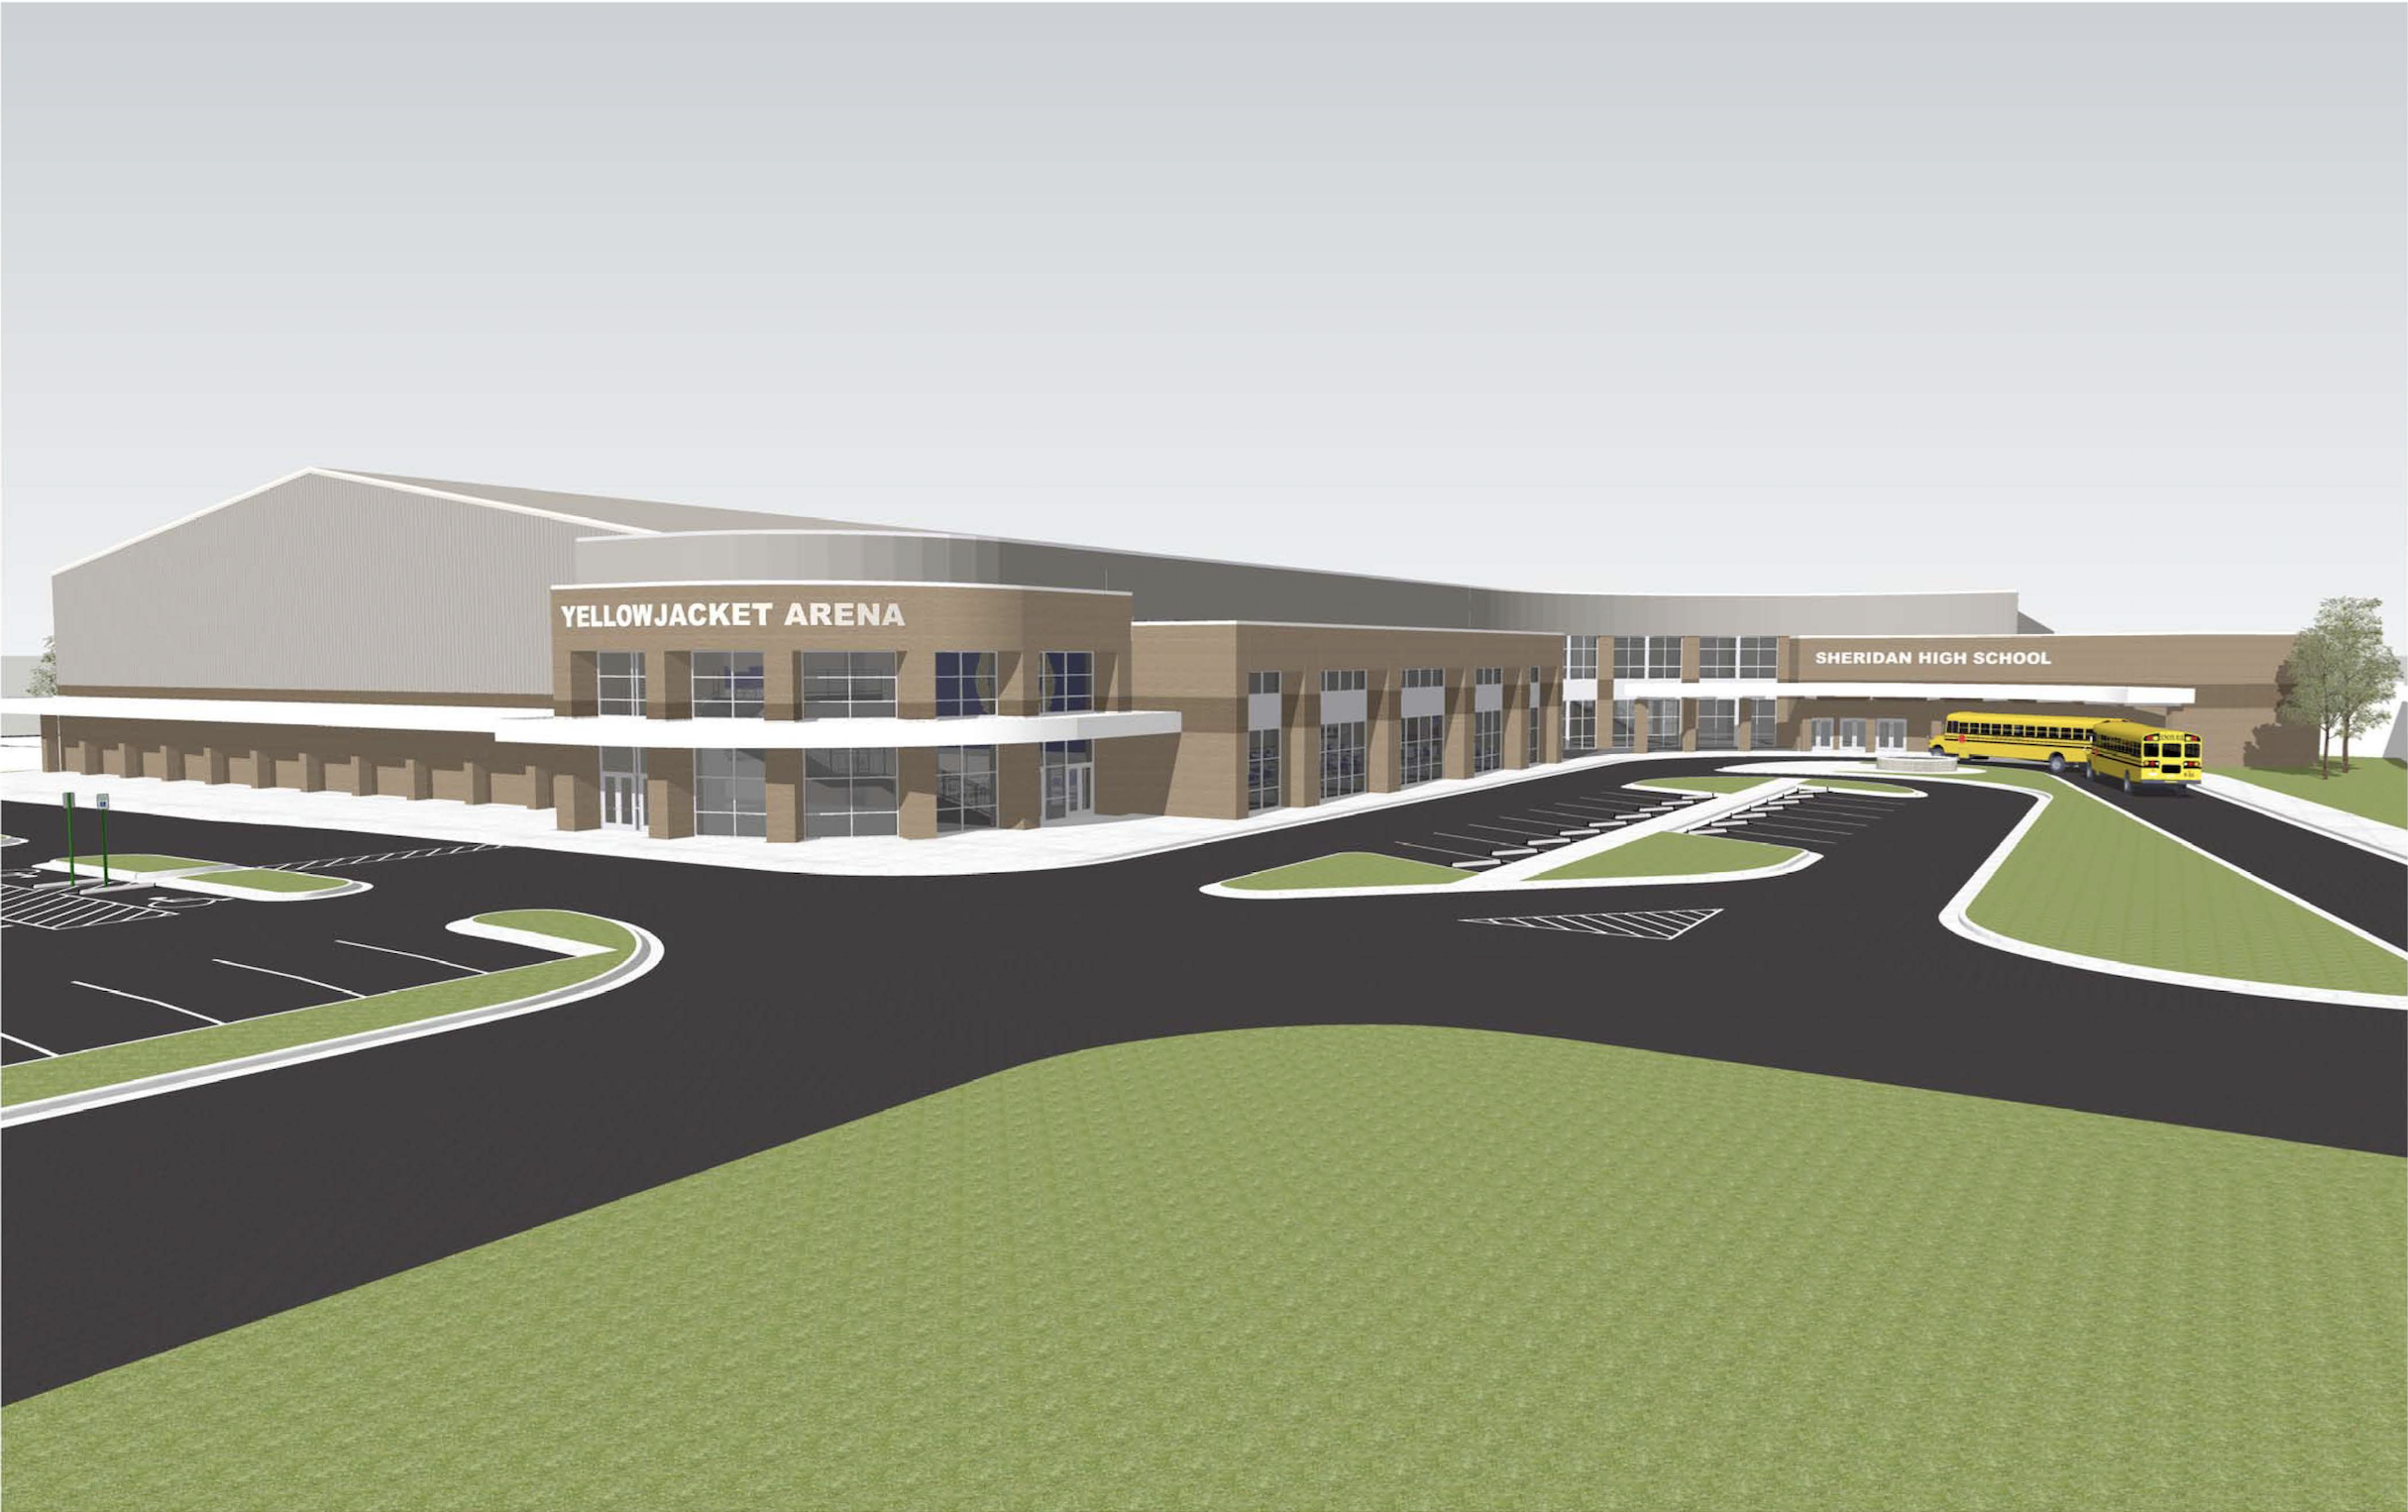 Rendering of the high school addition to be built in 2019